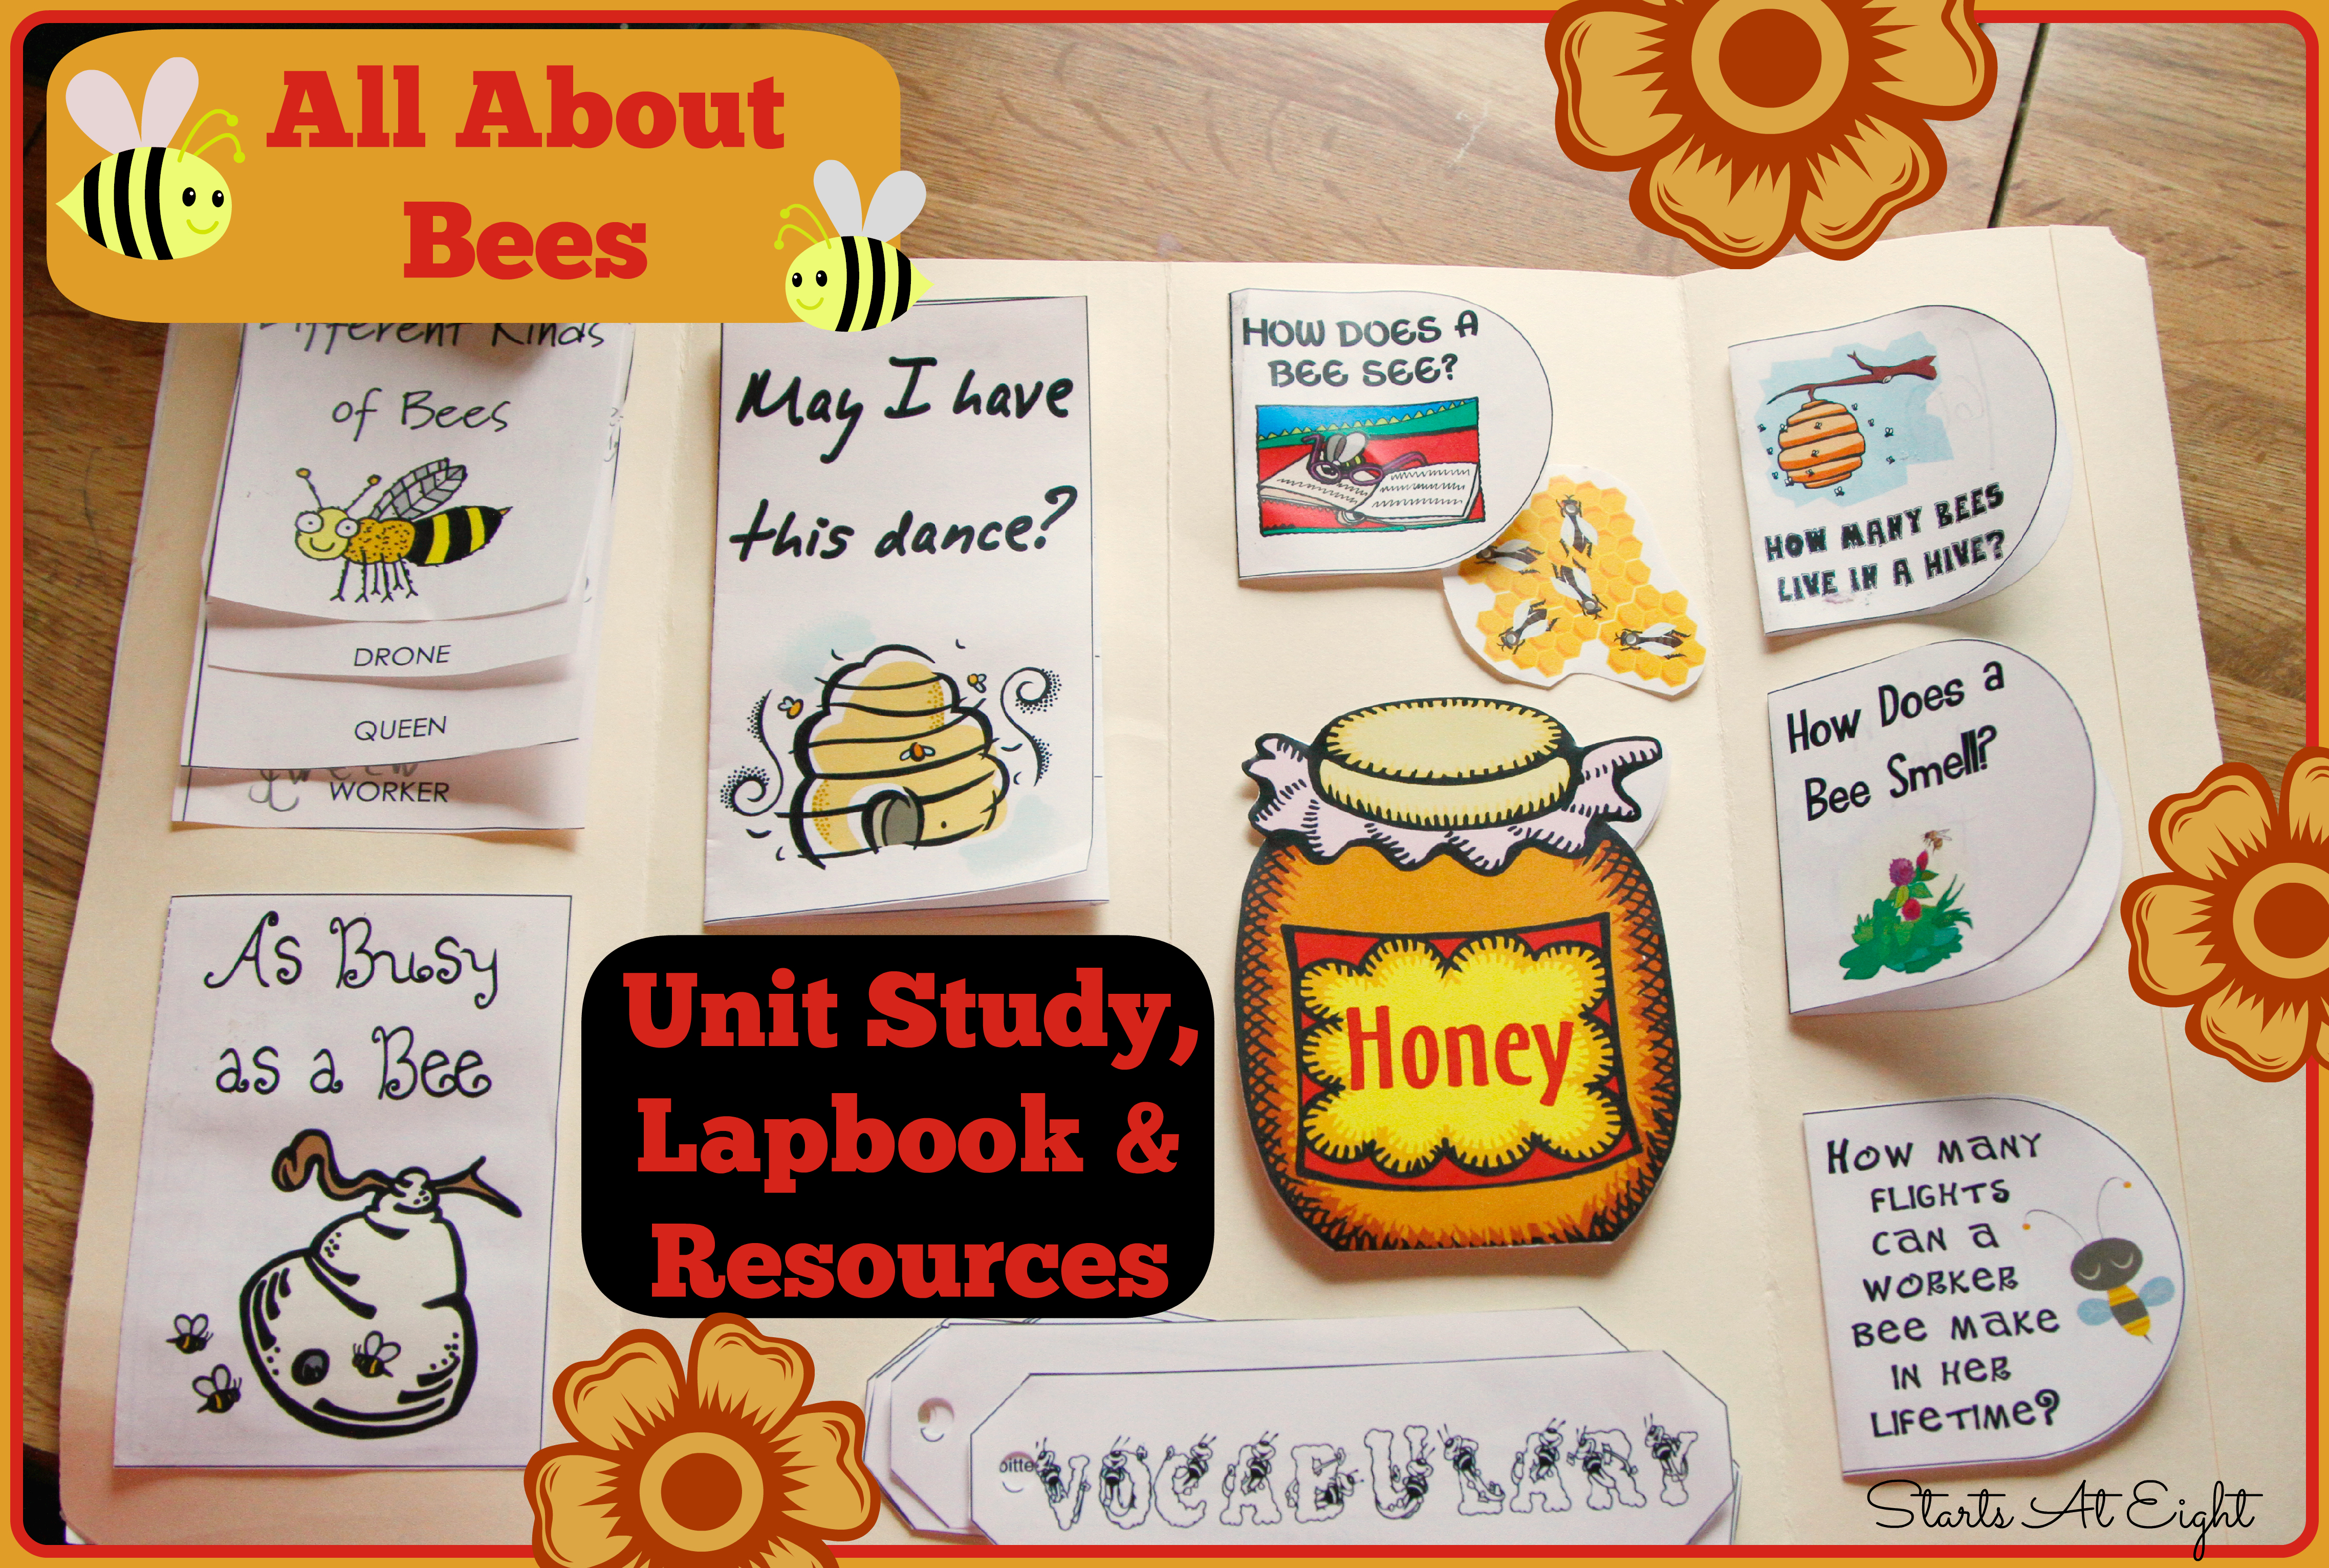 All About Bees Unit Study